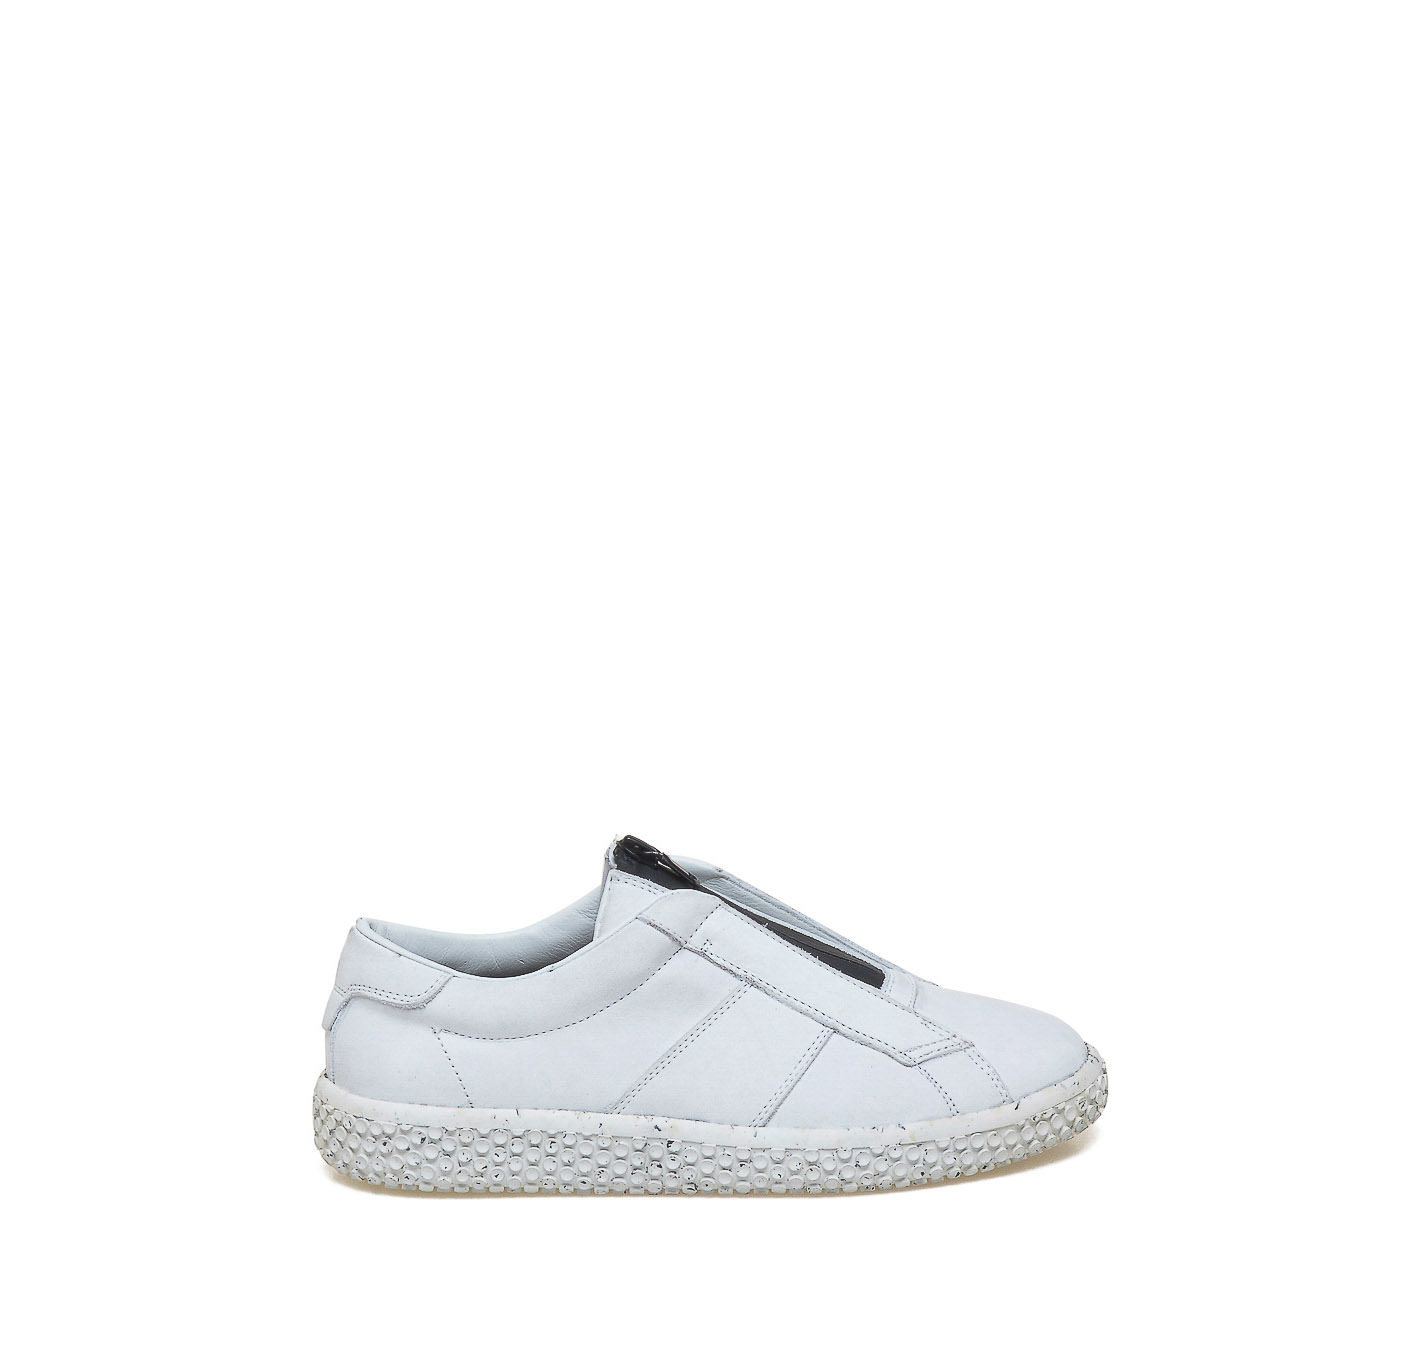 Woobiebr White Sneakers With Central Contrast Zip OXS Online - Formal invoice format best online sneaker store